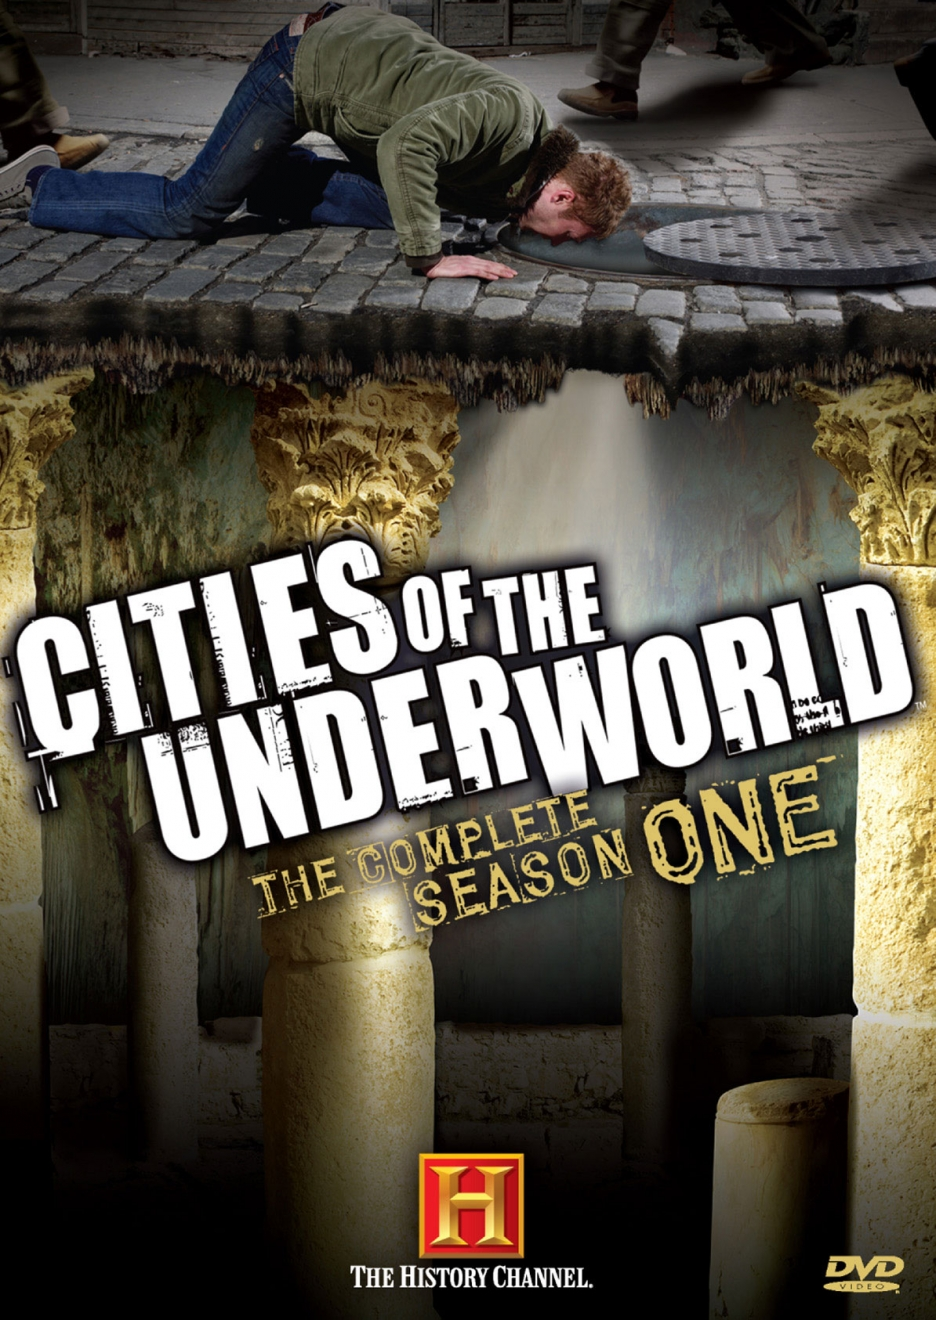 cities-of-the-underworld-poster.jpg